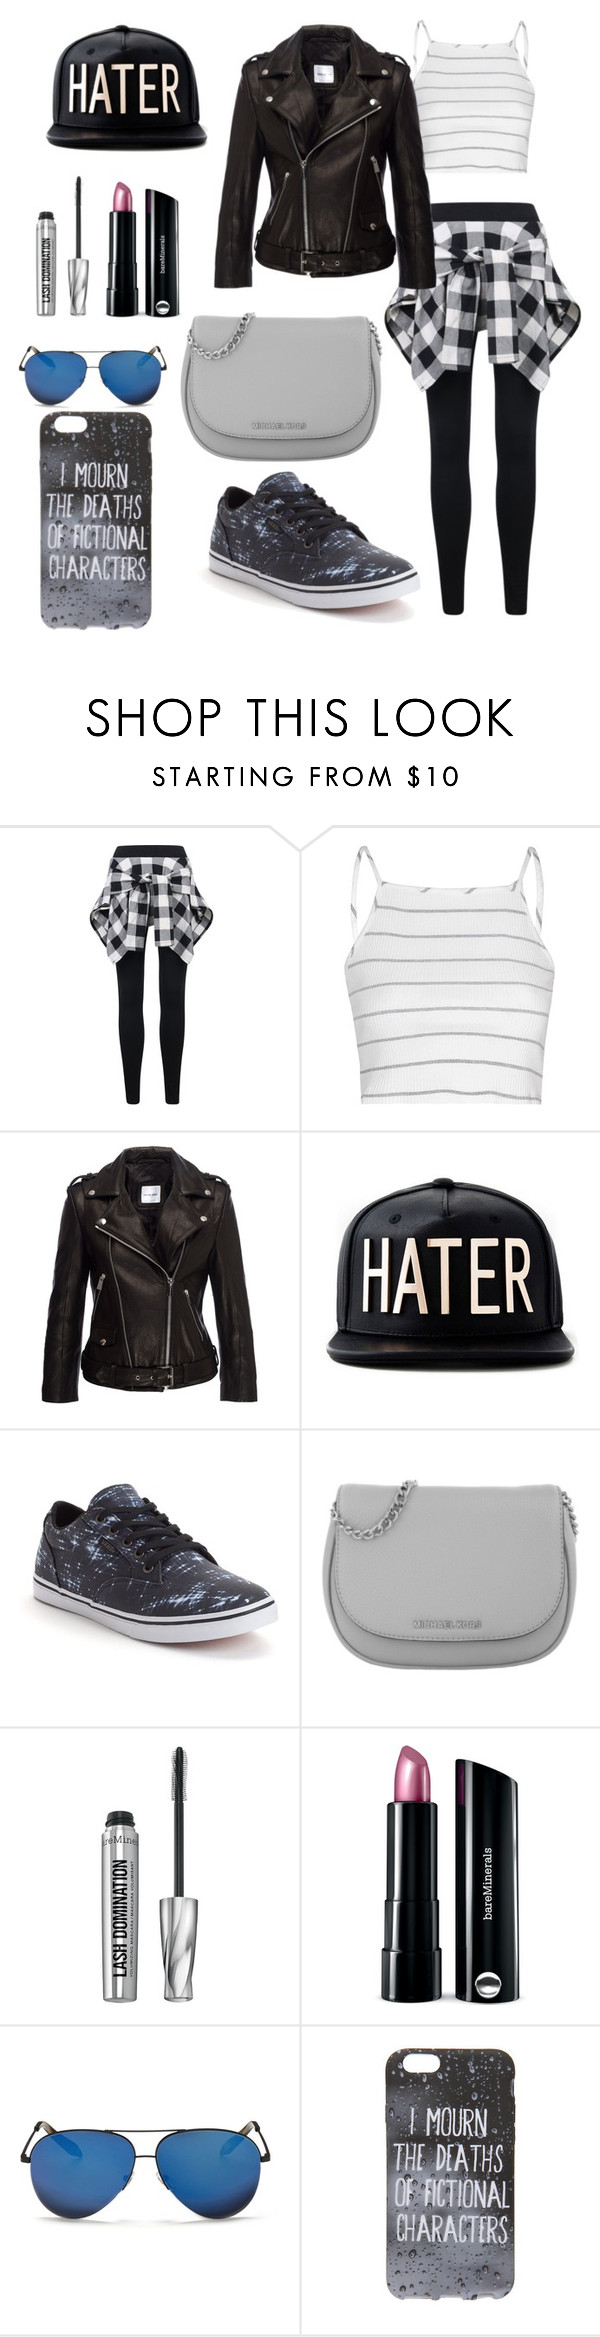 """Haters... Just leave"" by gamergirl45723 ❤ liked on Polyvore featuring Glamorous, Anine Bing, Vans, Michael Kors, Bare Escentuals and Victoria Beckham"